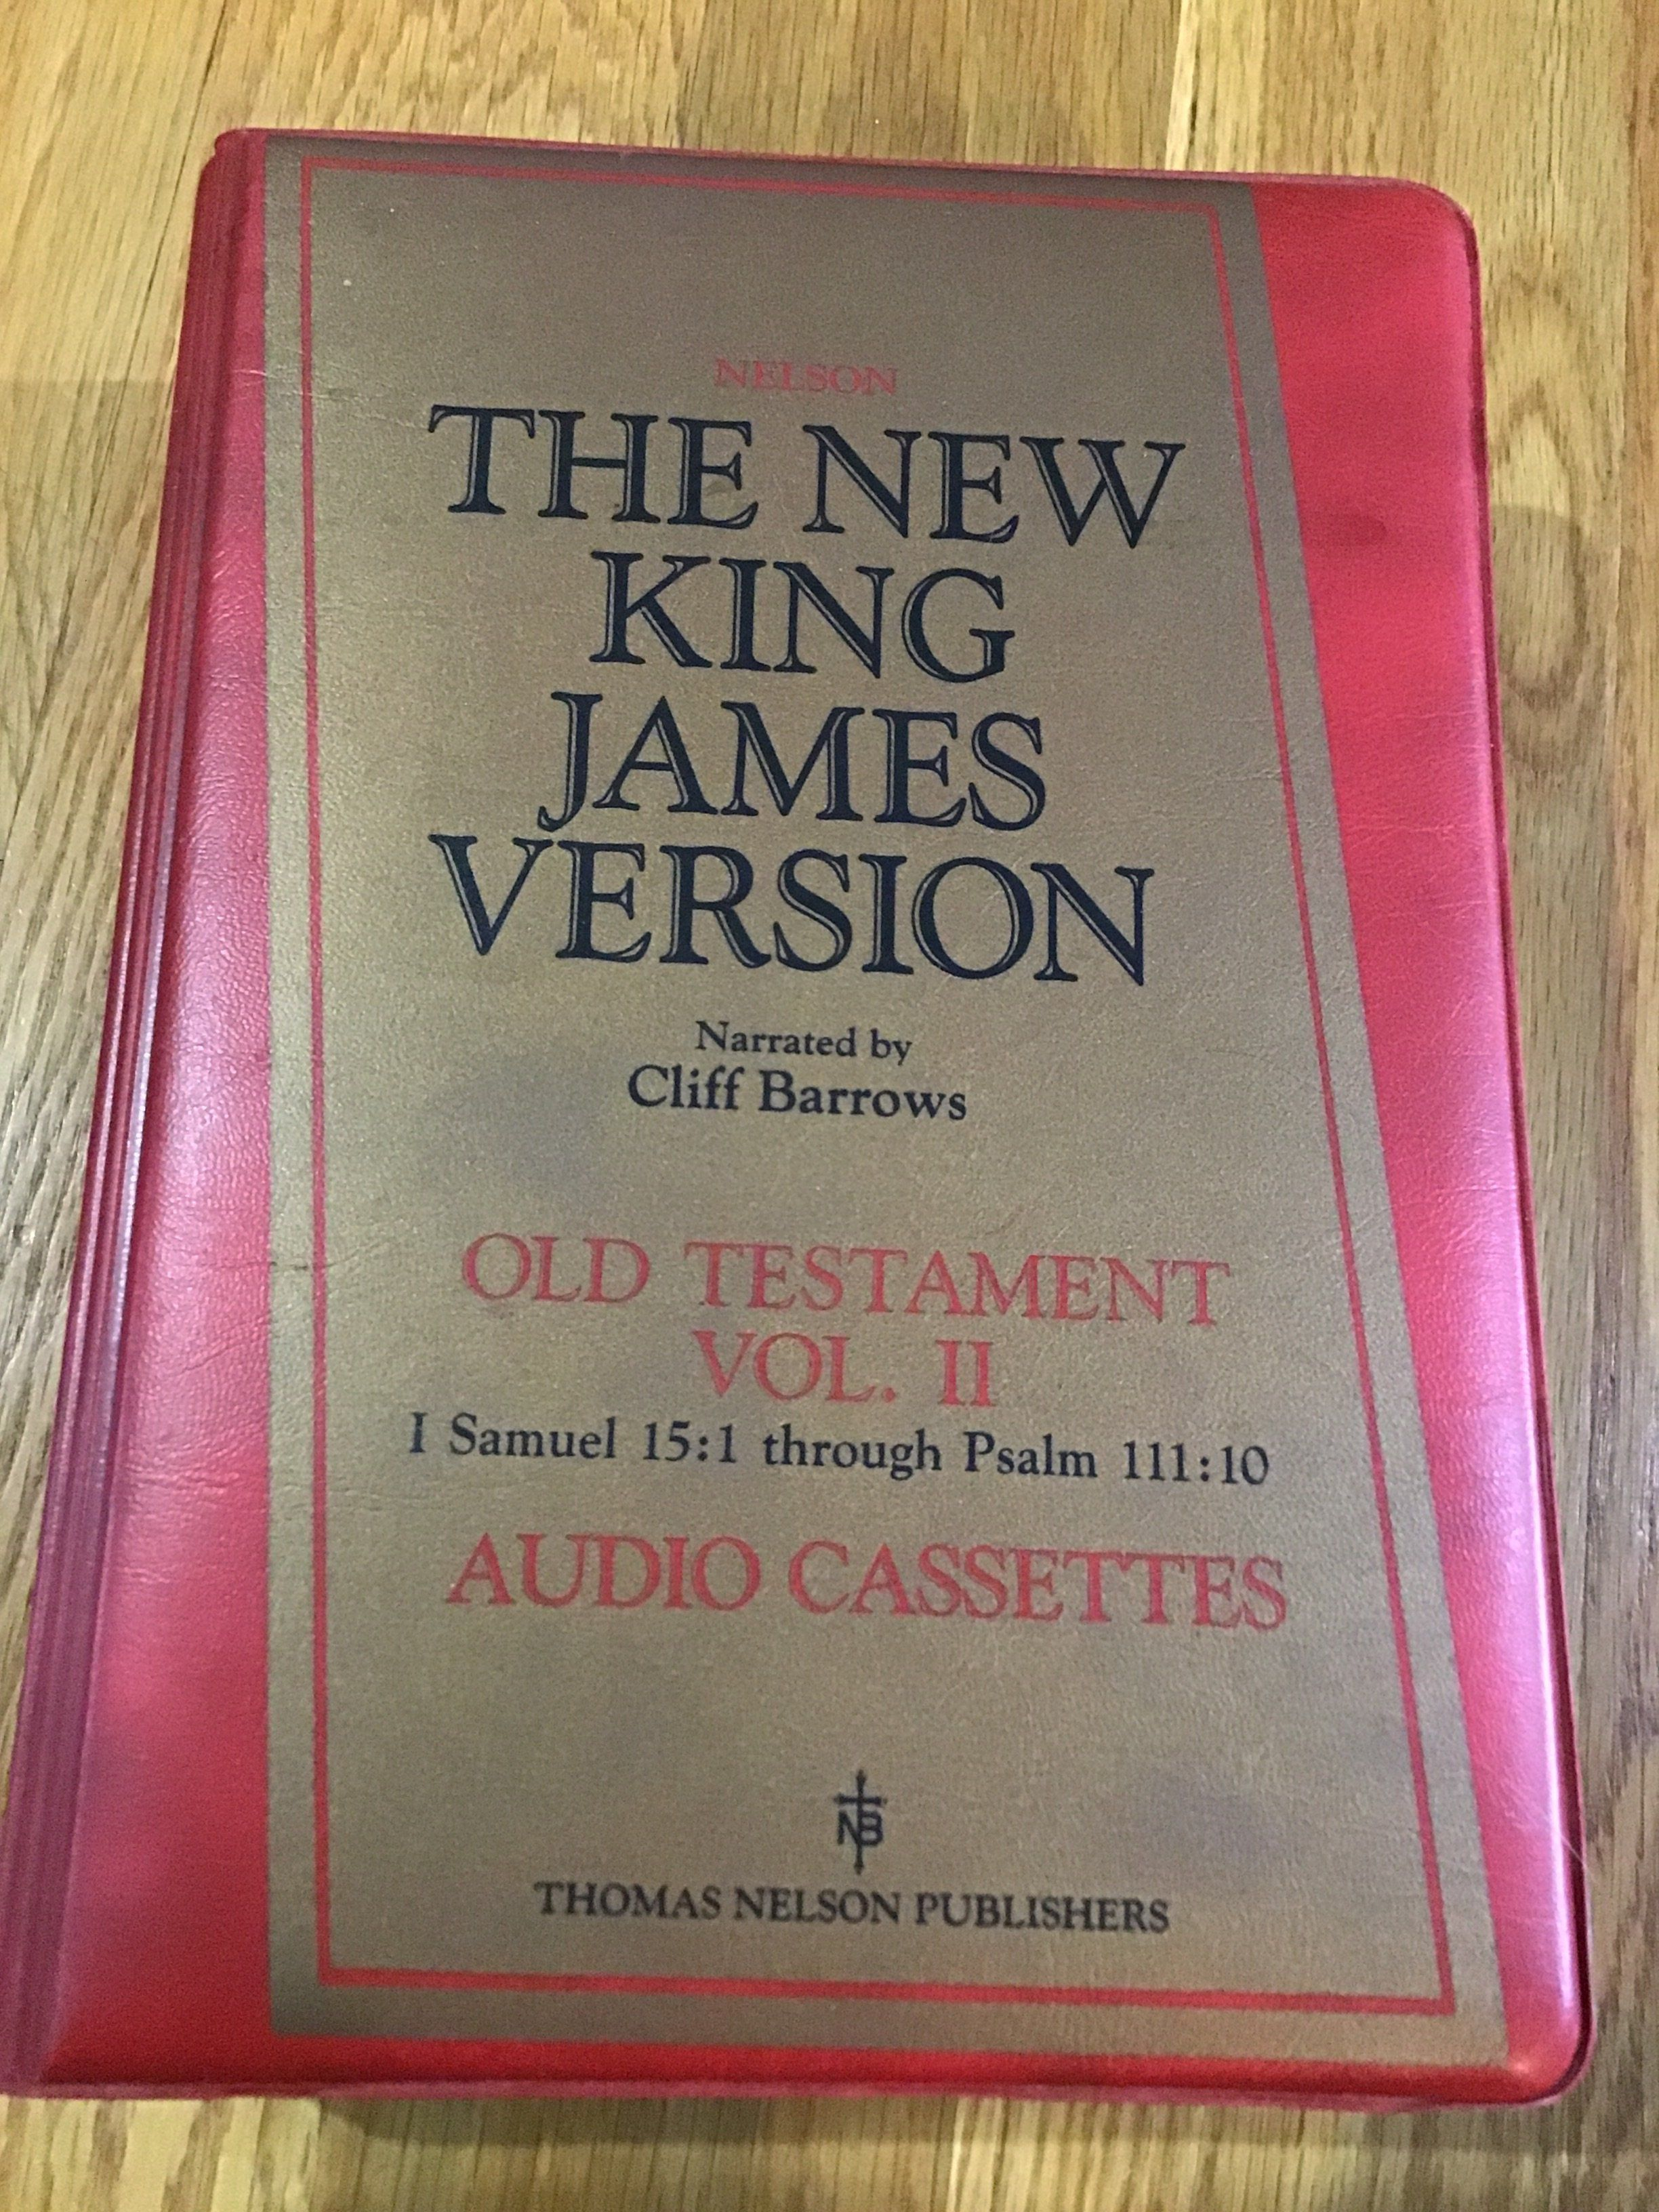 New King James Version Vol  ll  Audio Cassettes   Products